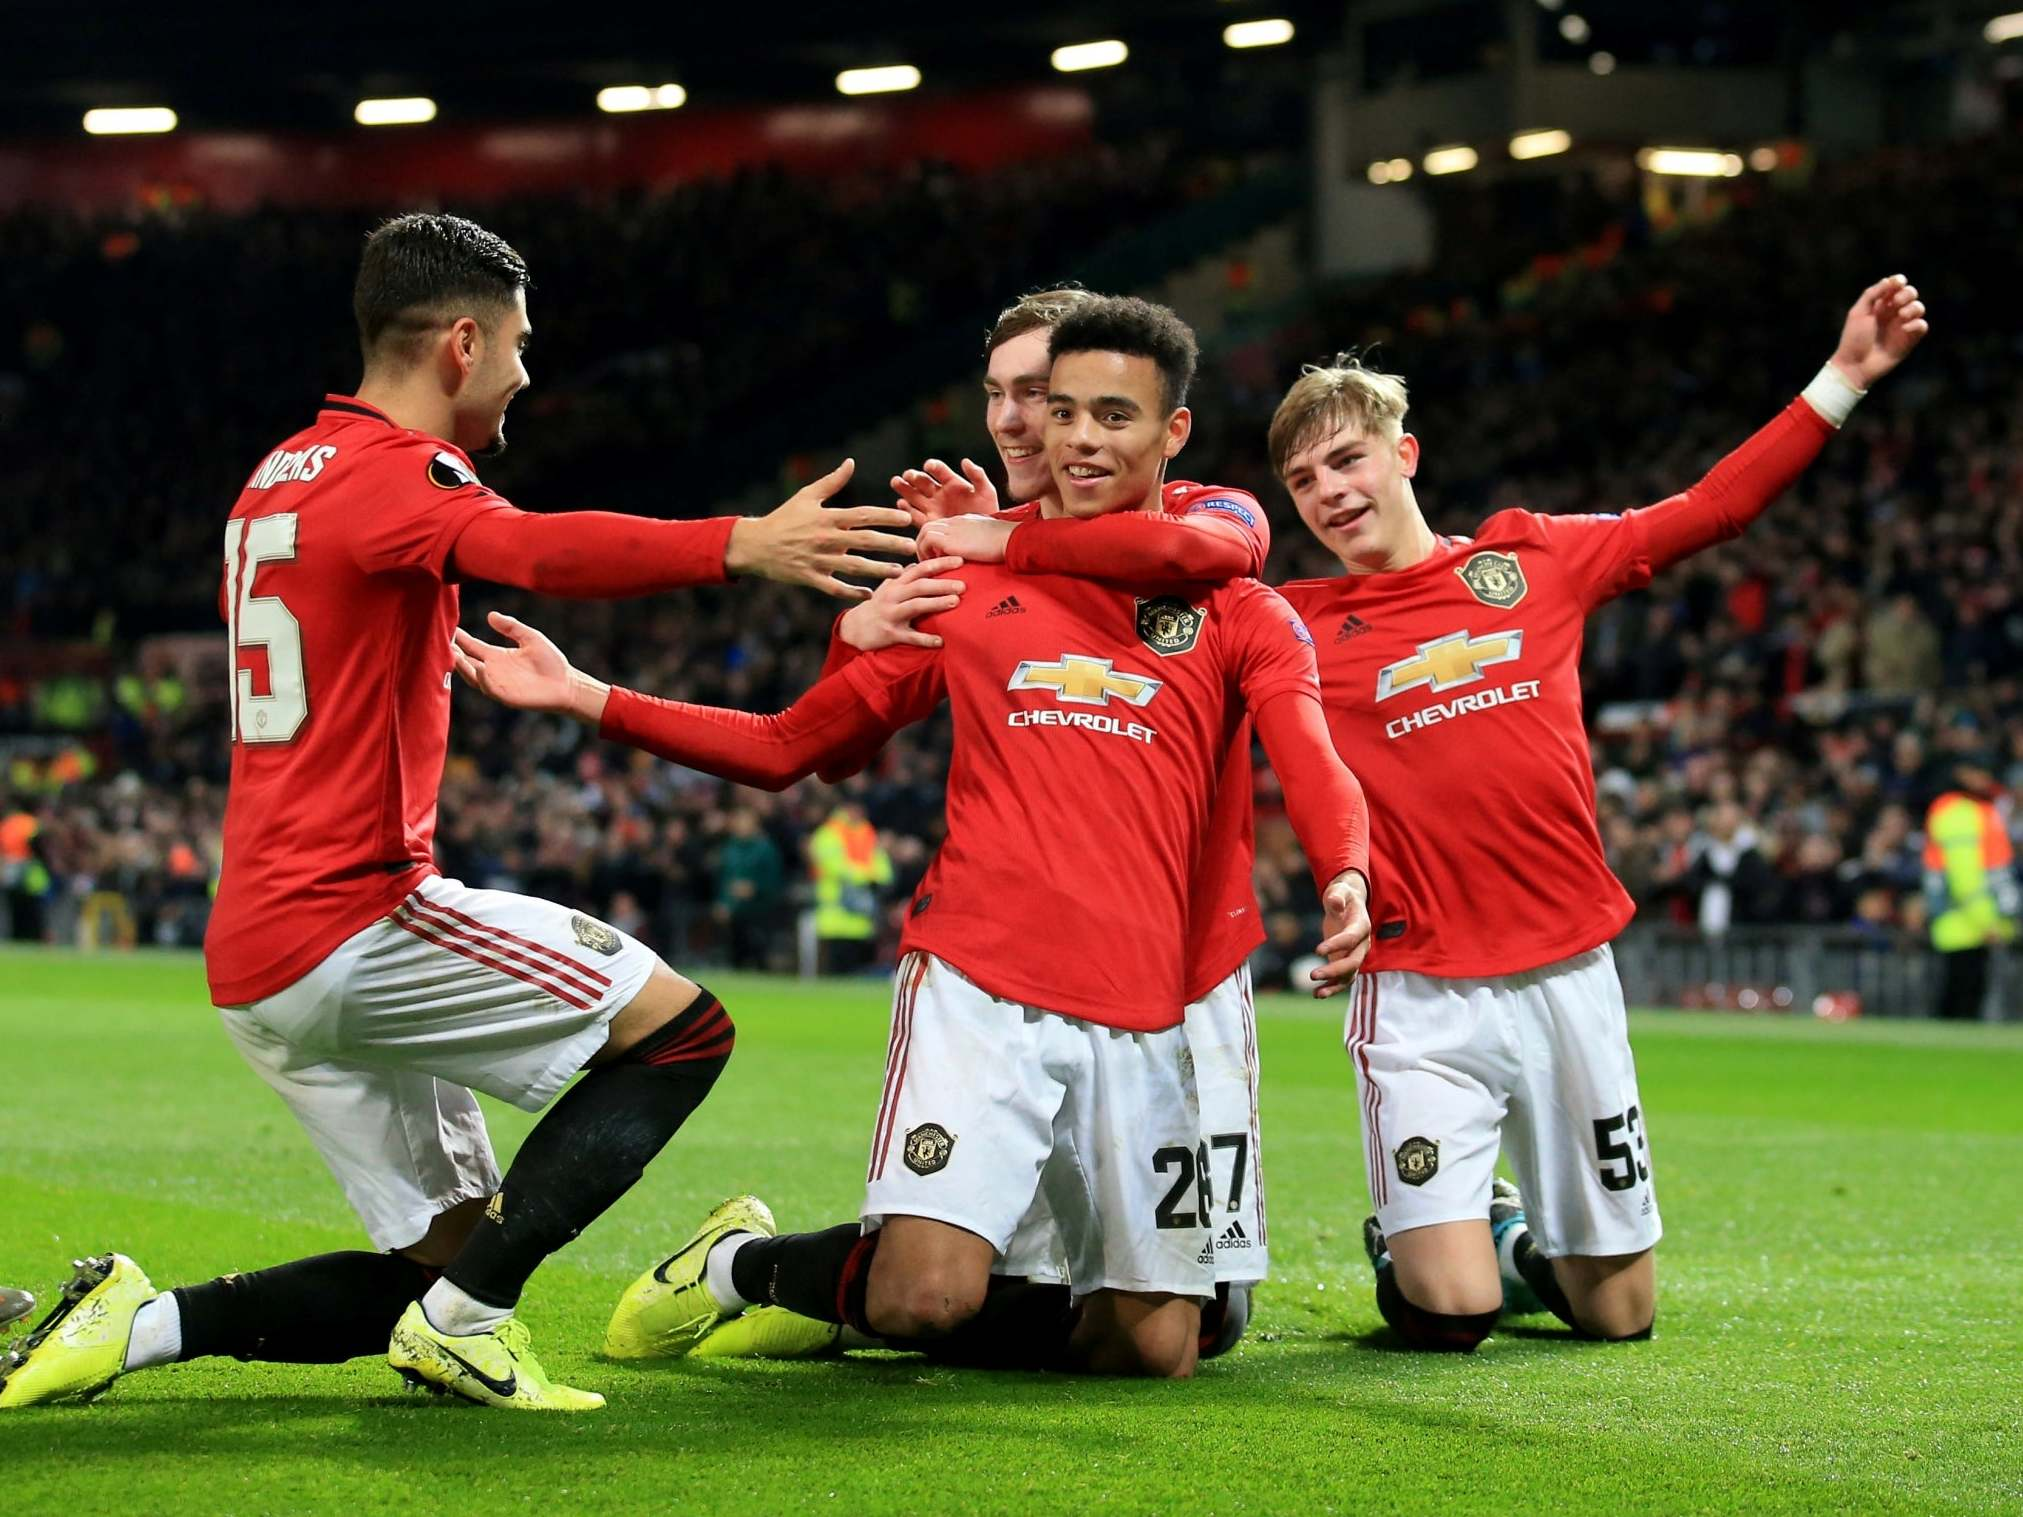 Manchester United vs AZ Alkmaar result: Mason Greenwood shows why he is Old Trafford's next great hope